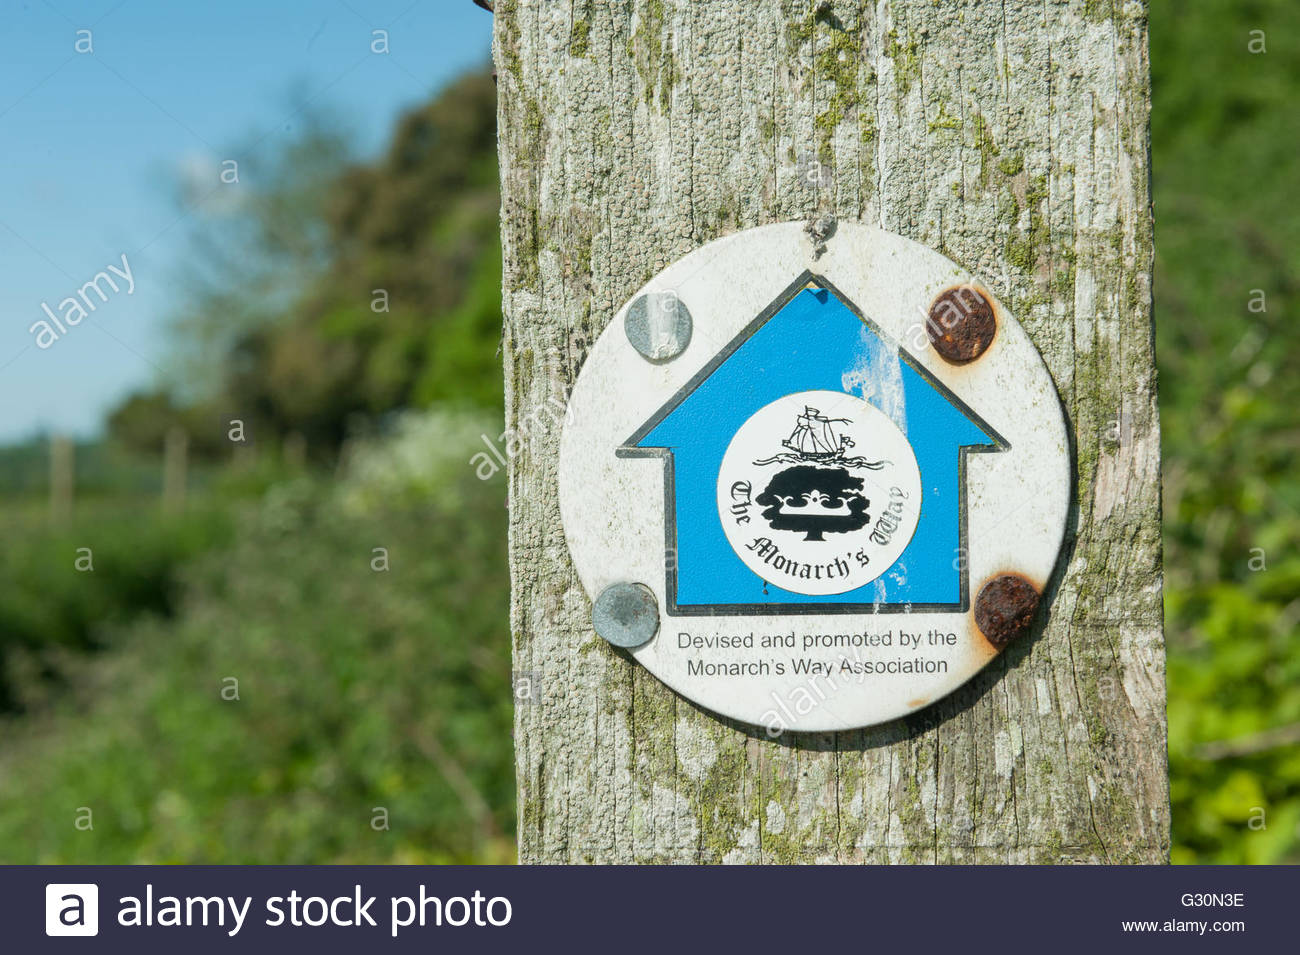 nr Findon Sussex UK Monarchs Way walk - Stock Image